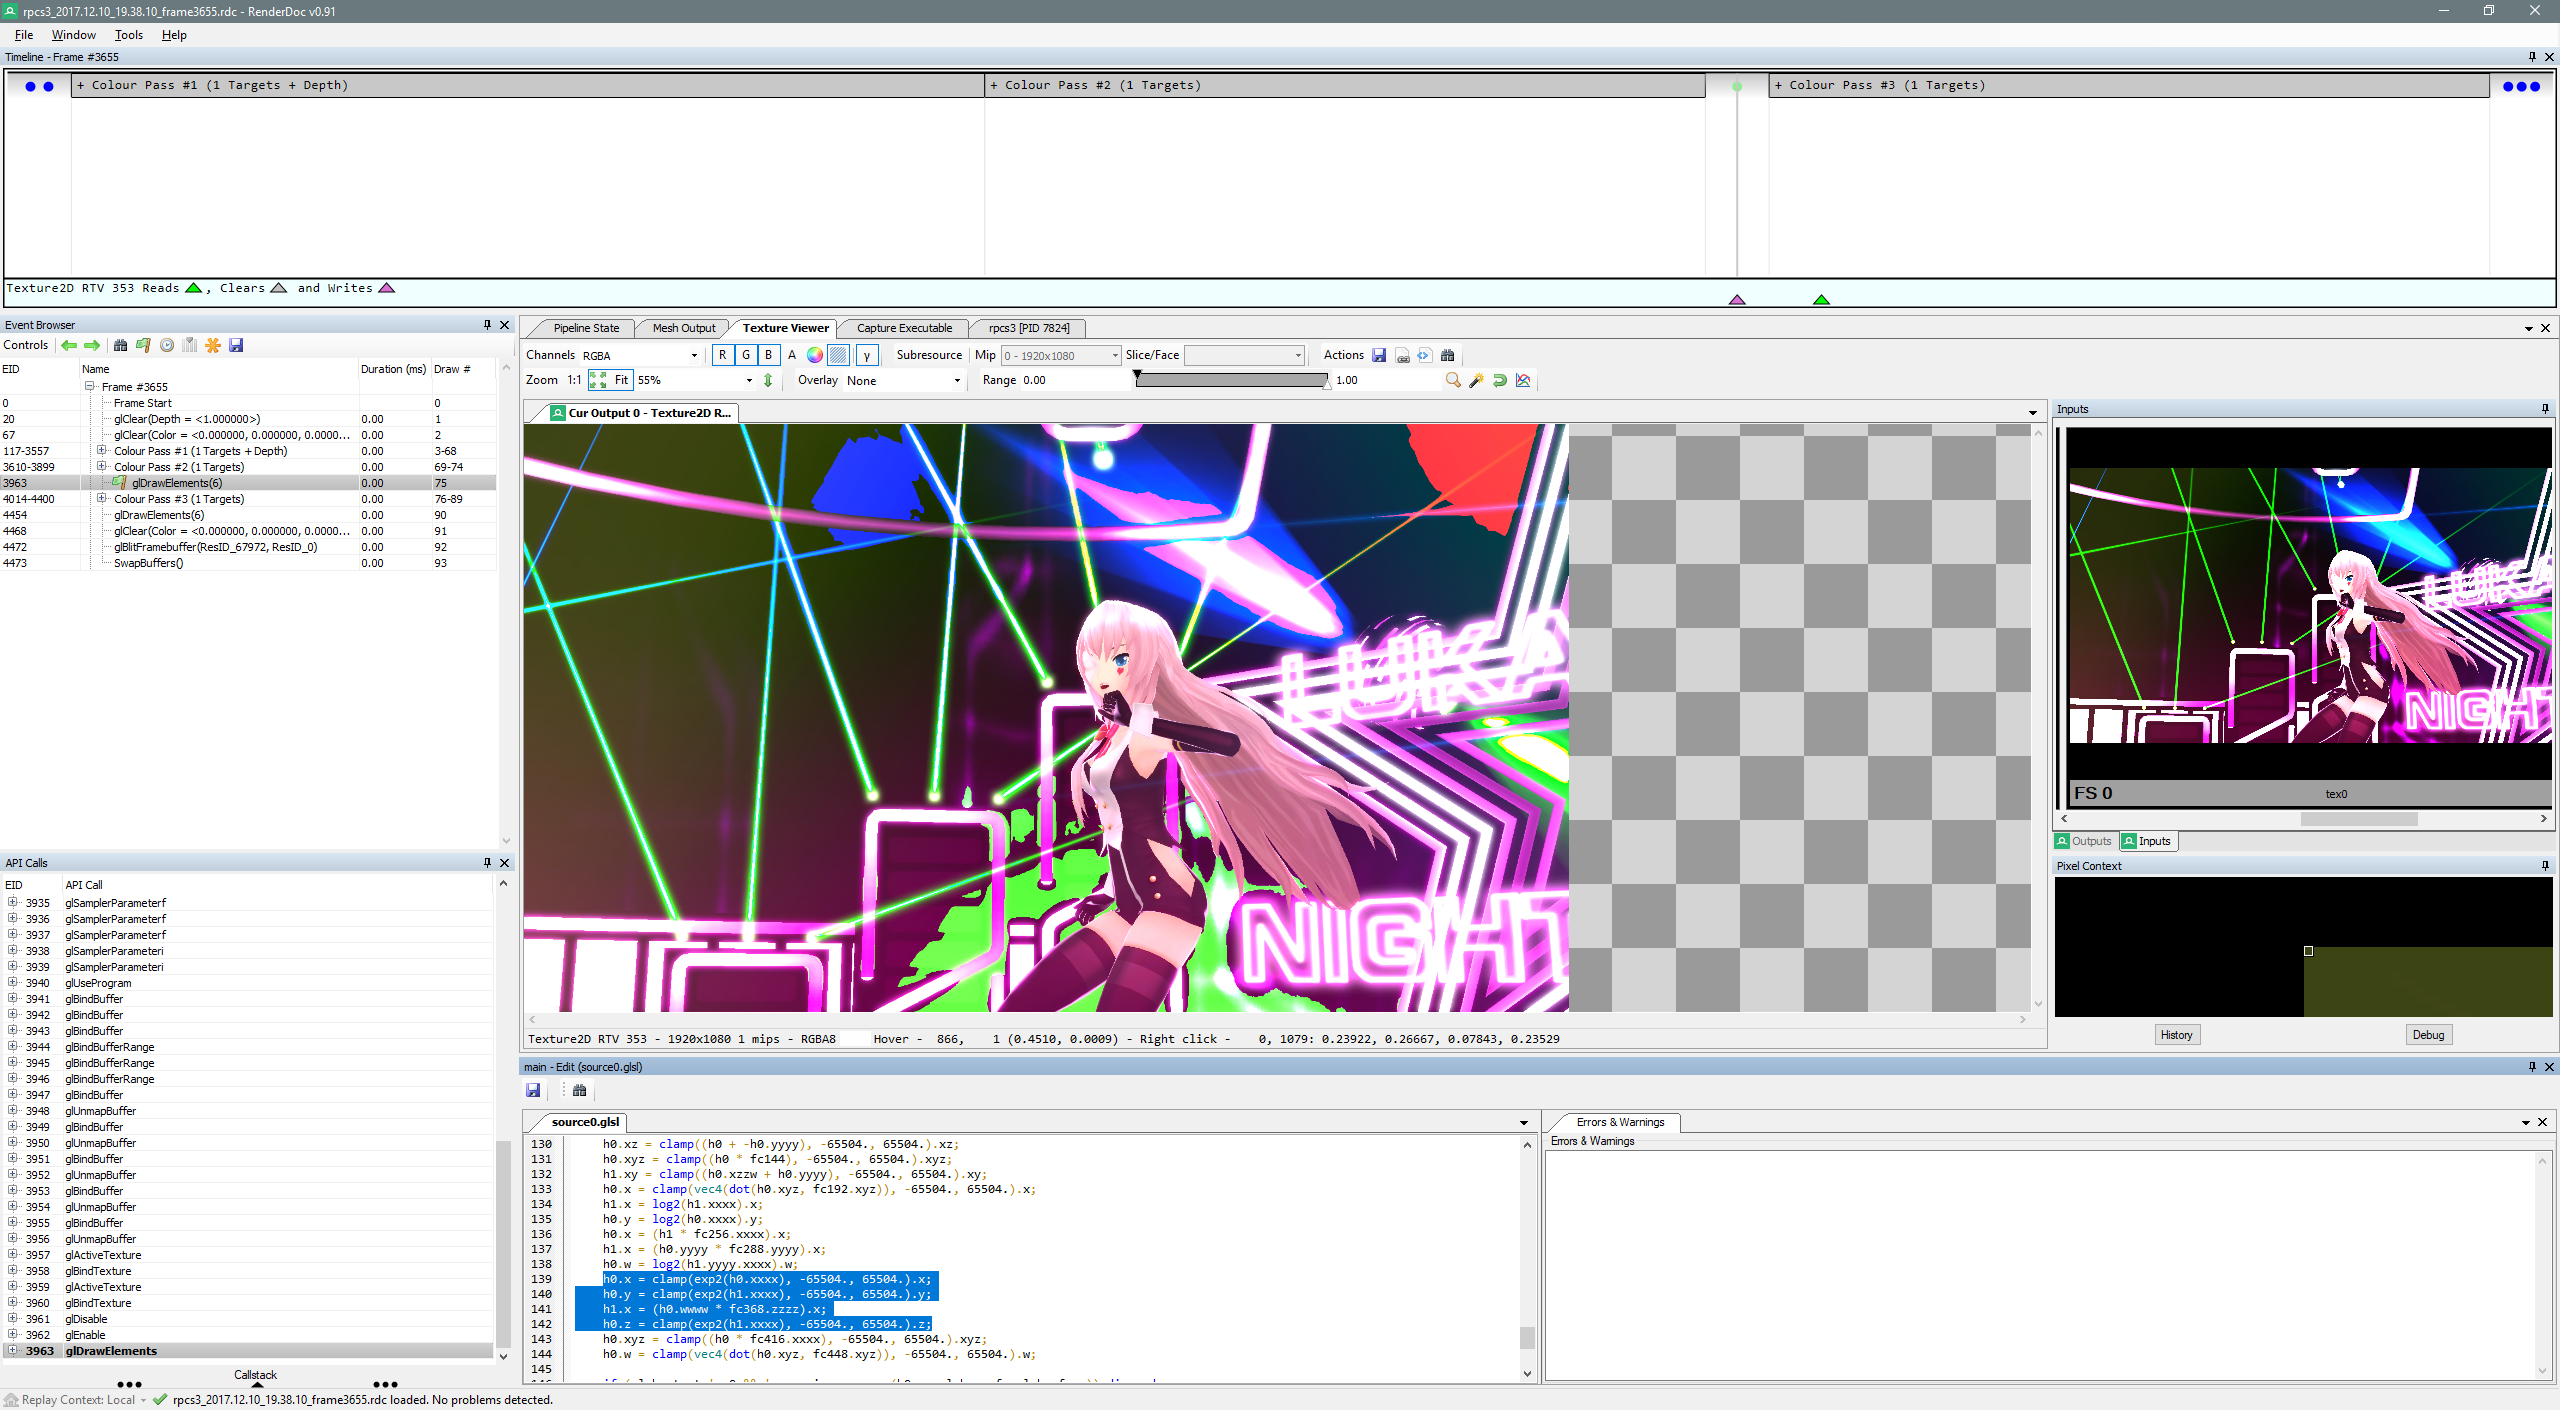 Almost Every Graphic's Problems On Project Diva F 2nd [BLUS31431] -